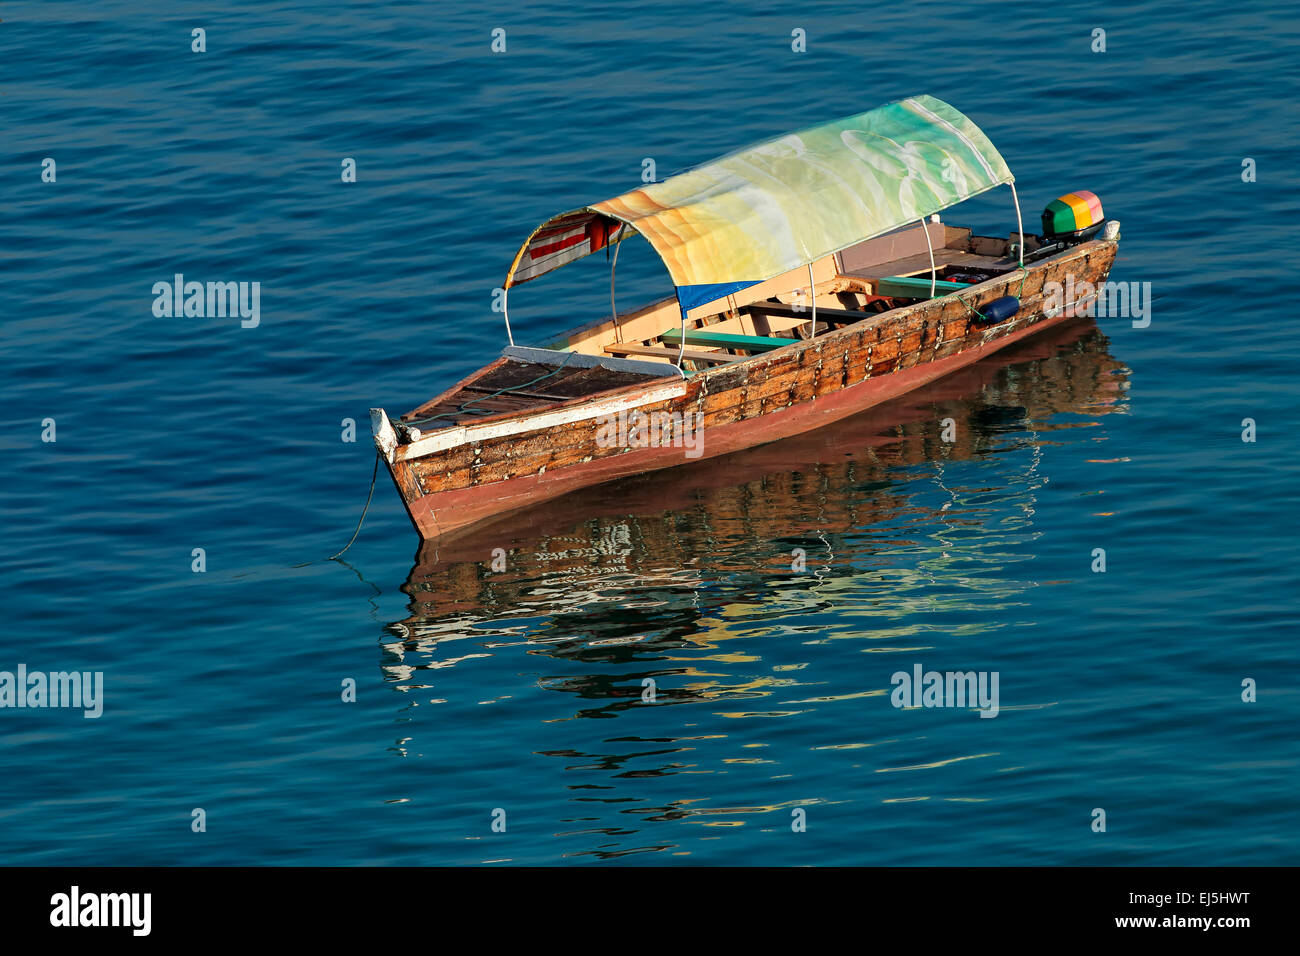 Anchored wooden boat with reflection in water, Zanzibar island - Stock Image